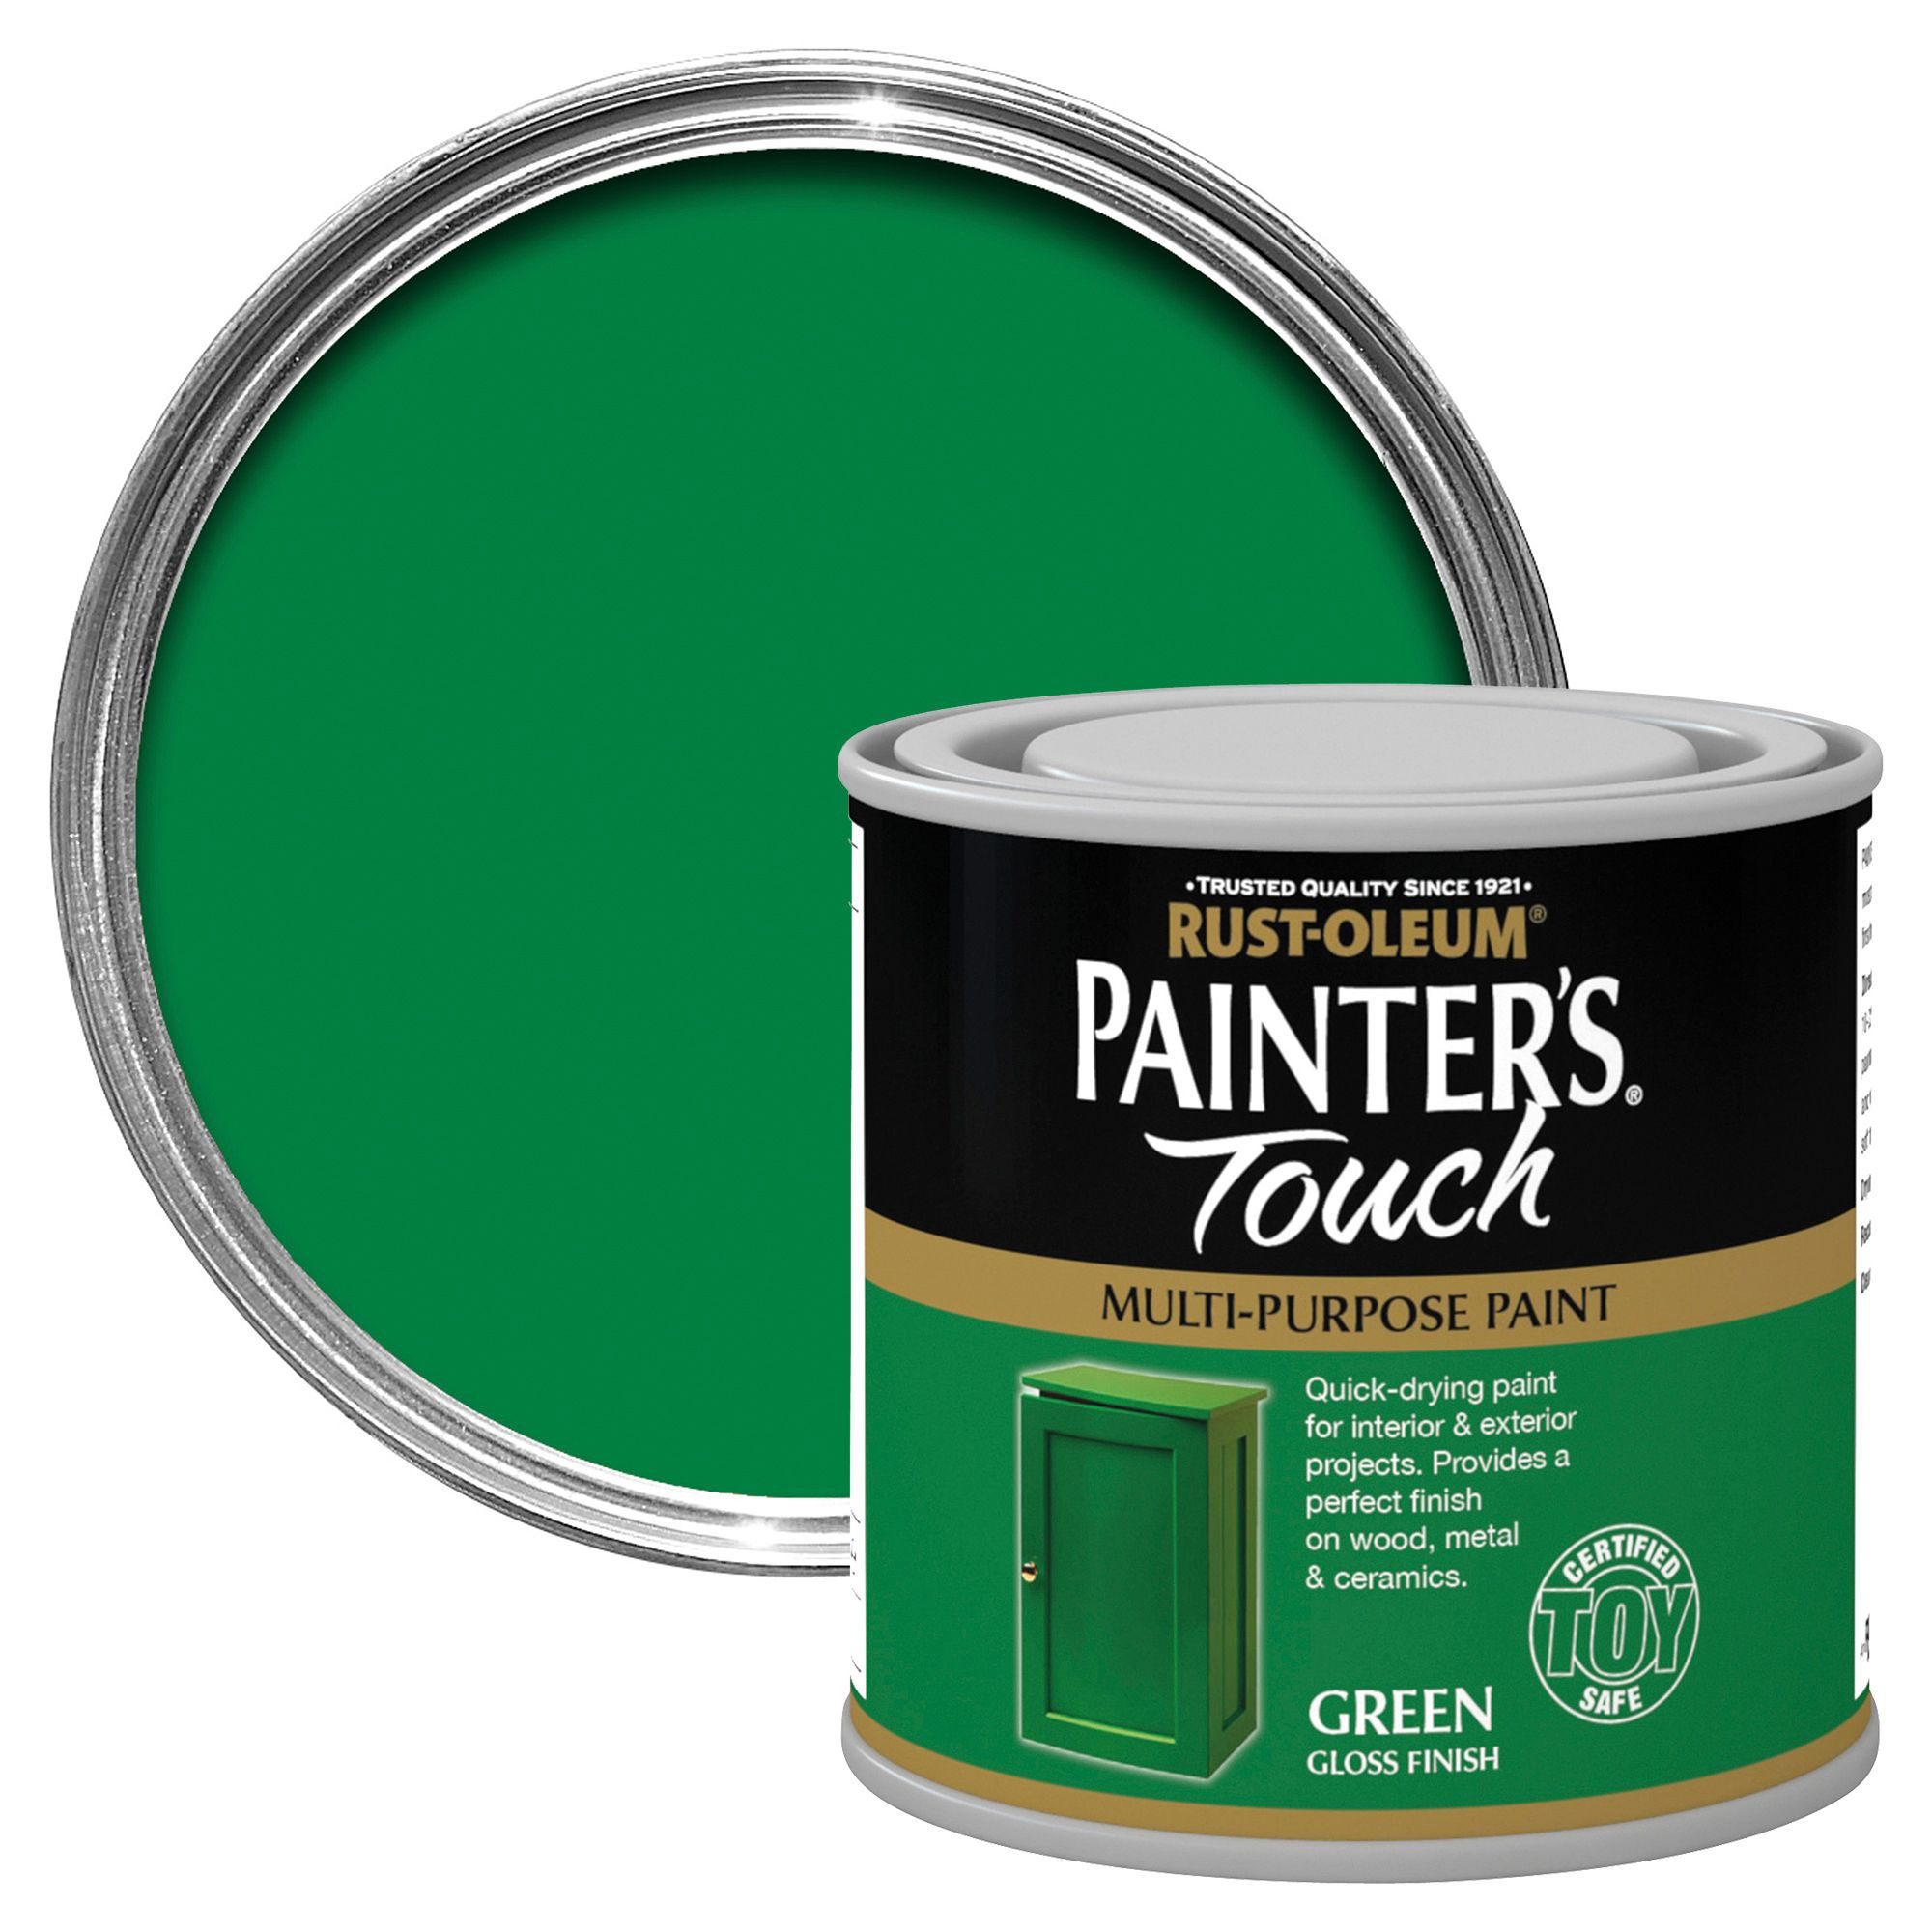 Rust-Oleum Painter's Touch Interior & Exterior Green Gloss Multipurpose Paint 250ml